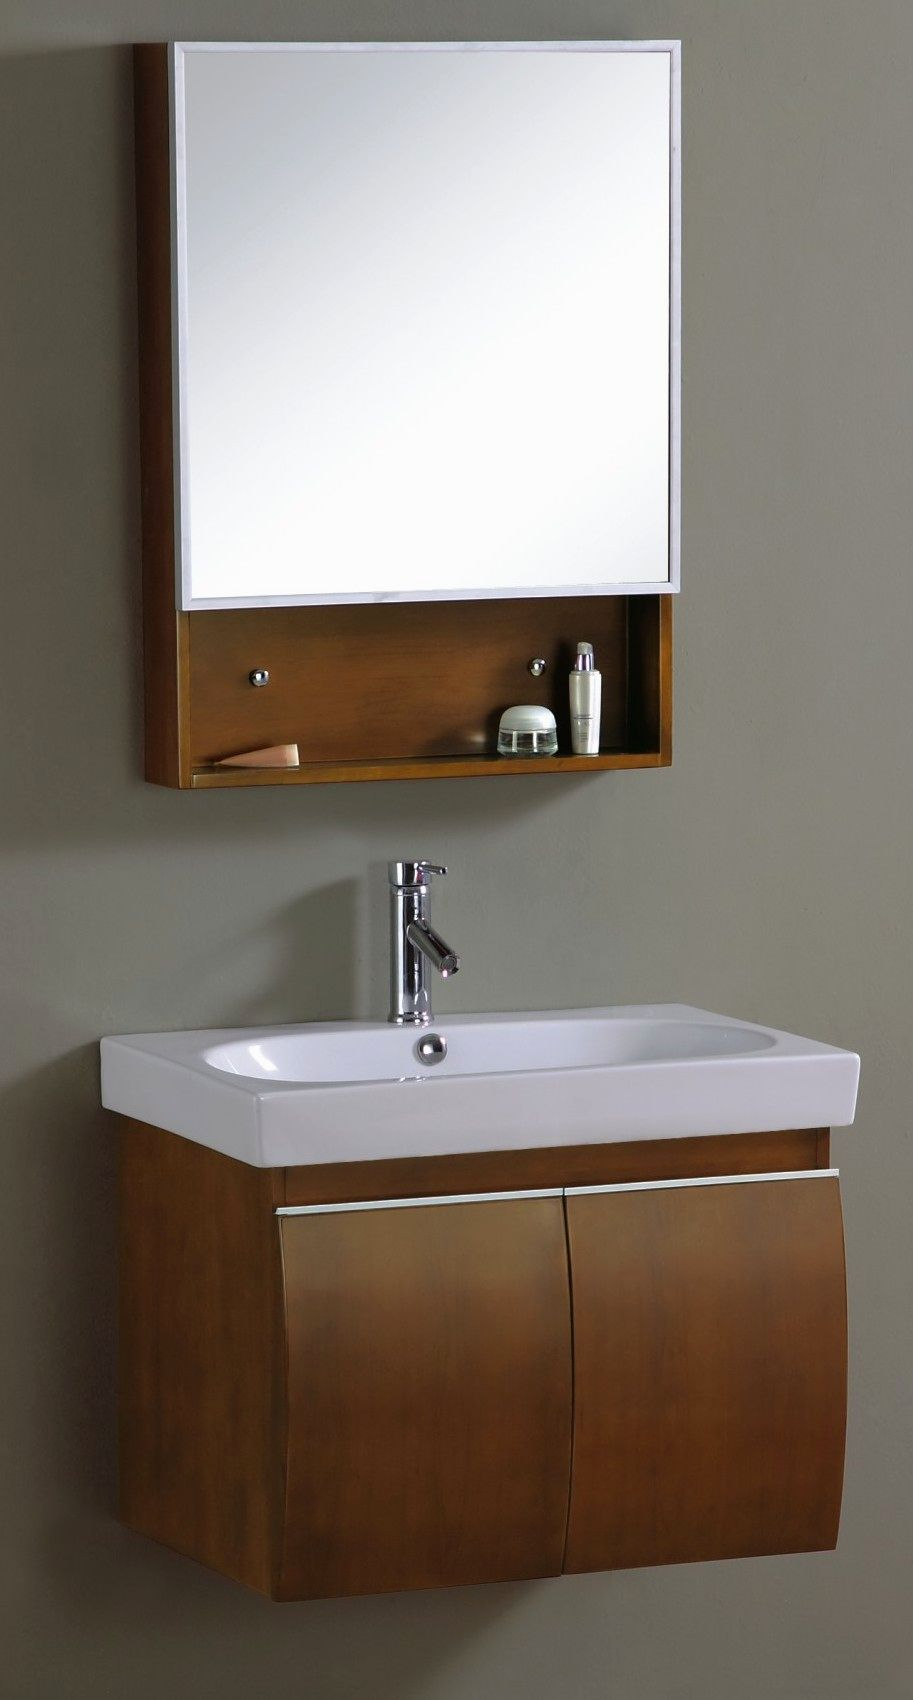 new wall mounted bathroom cabinets plan-Awesome Wall Mounted Bathroom Cabinets Layout